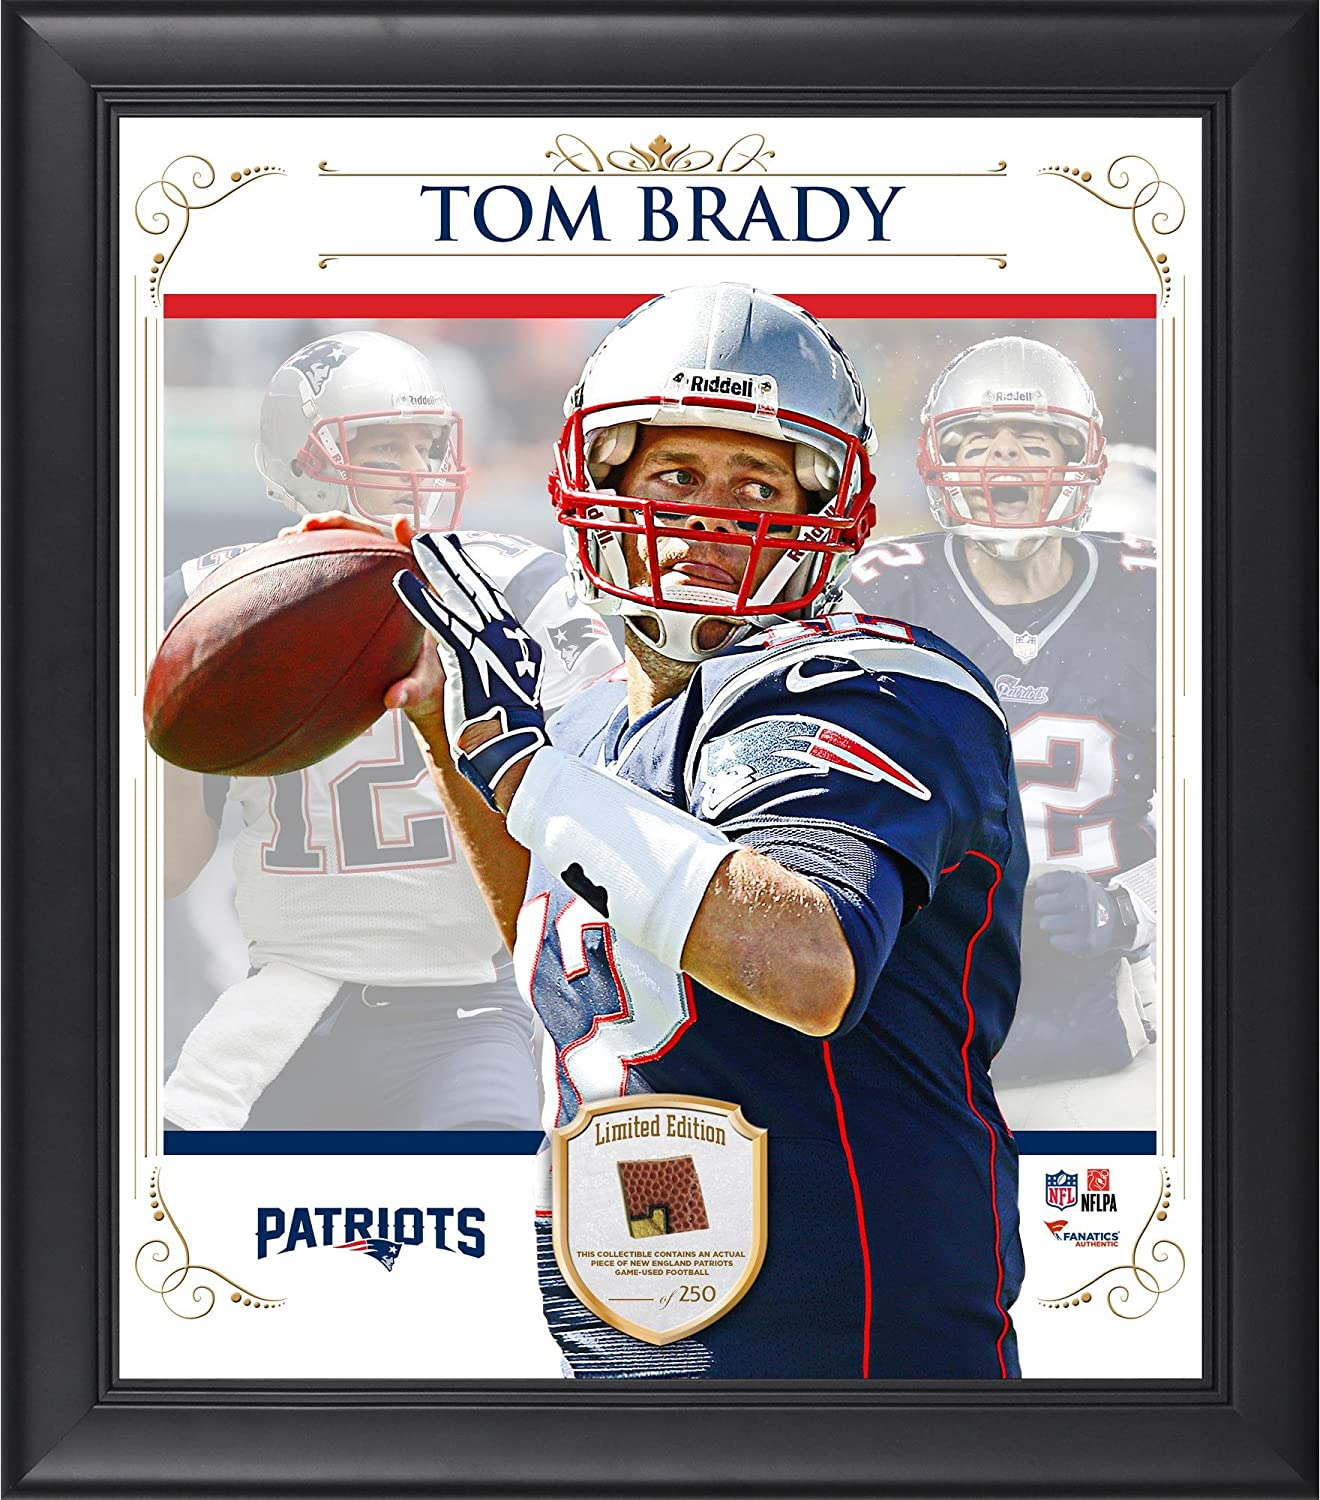 Tom Brady New England Patriots Framed 15' x 17' Composite Collage with Piece of Game-Used Football - NFL Player Plaques and Collages Fanatics Authentic